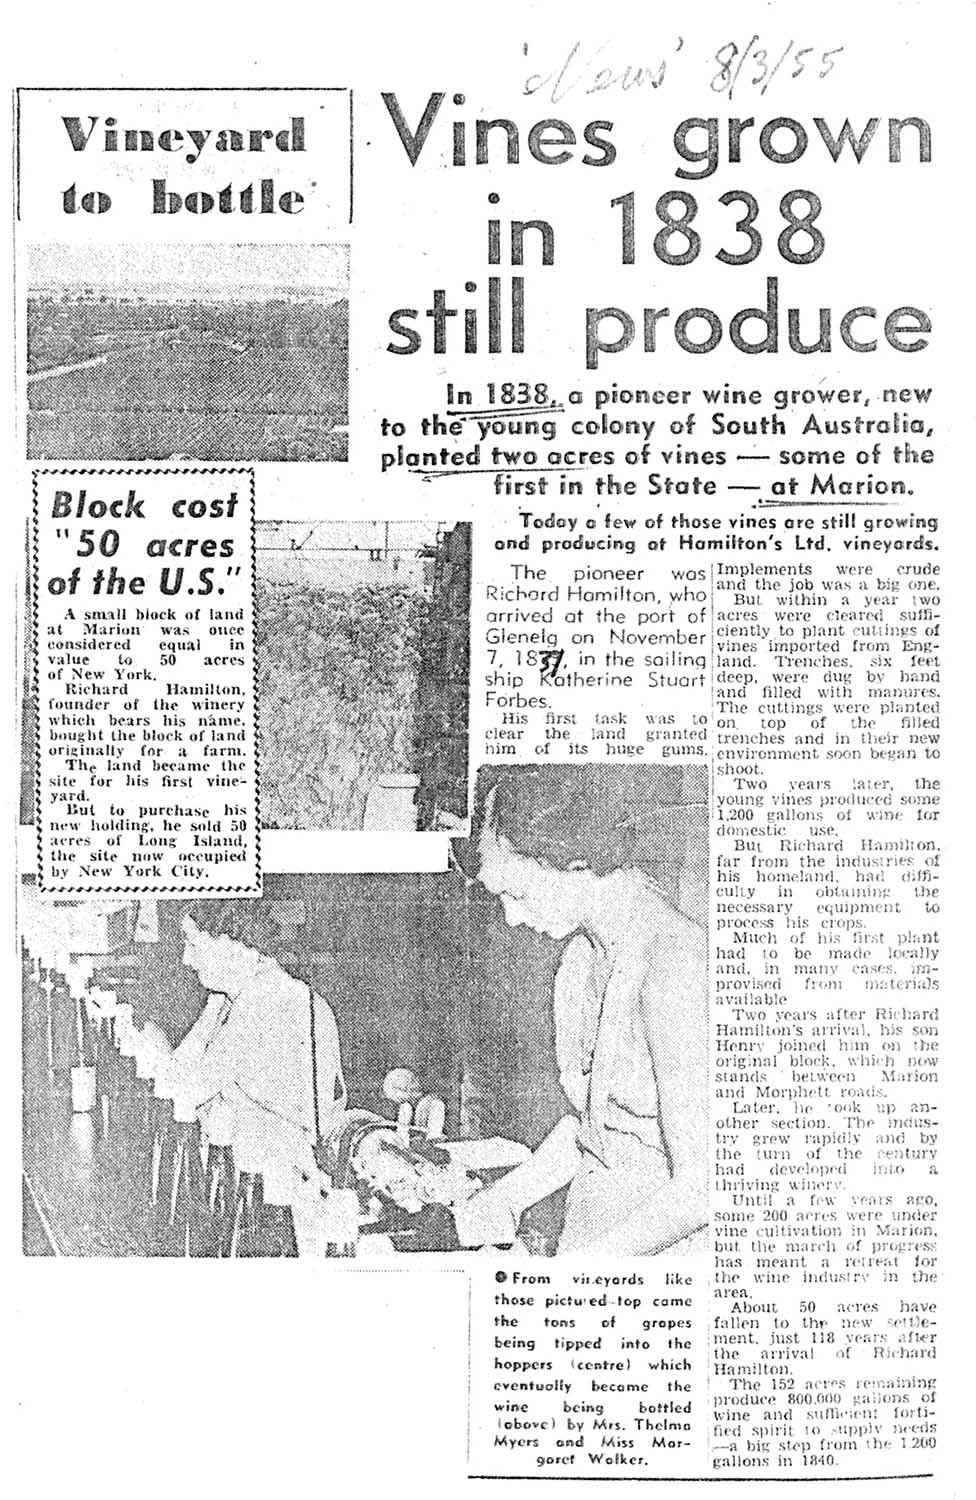 Vineyard article The News 8 March 1955